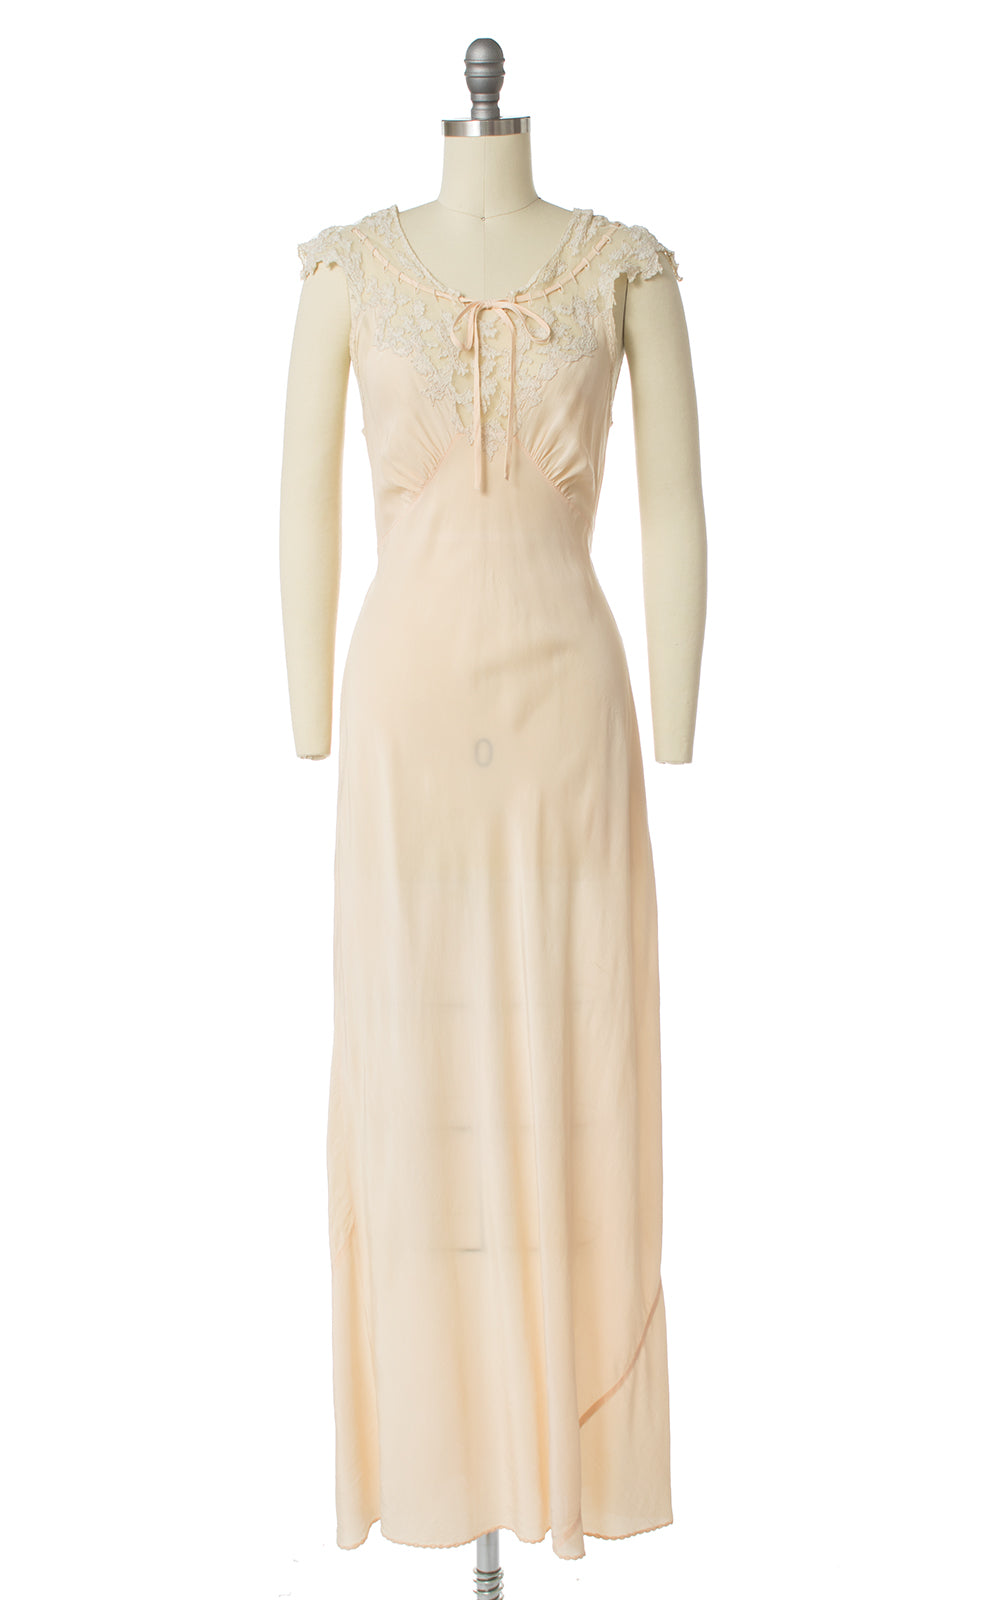 1940s Bias-Cut Peach Silk & Lace Nightgown